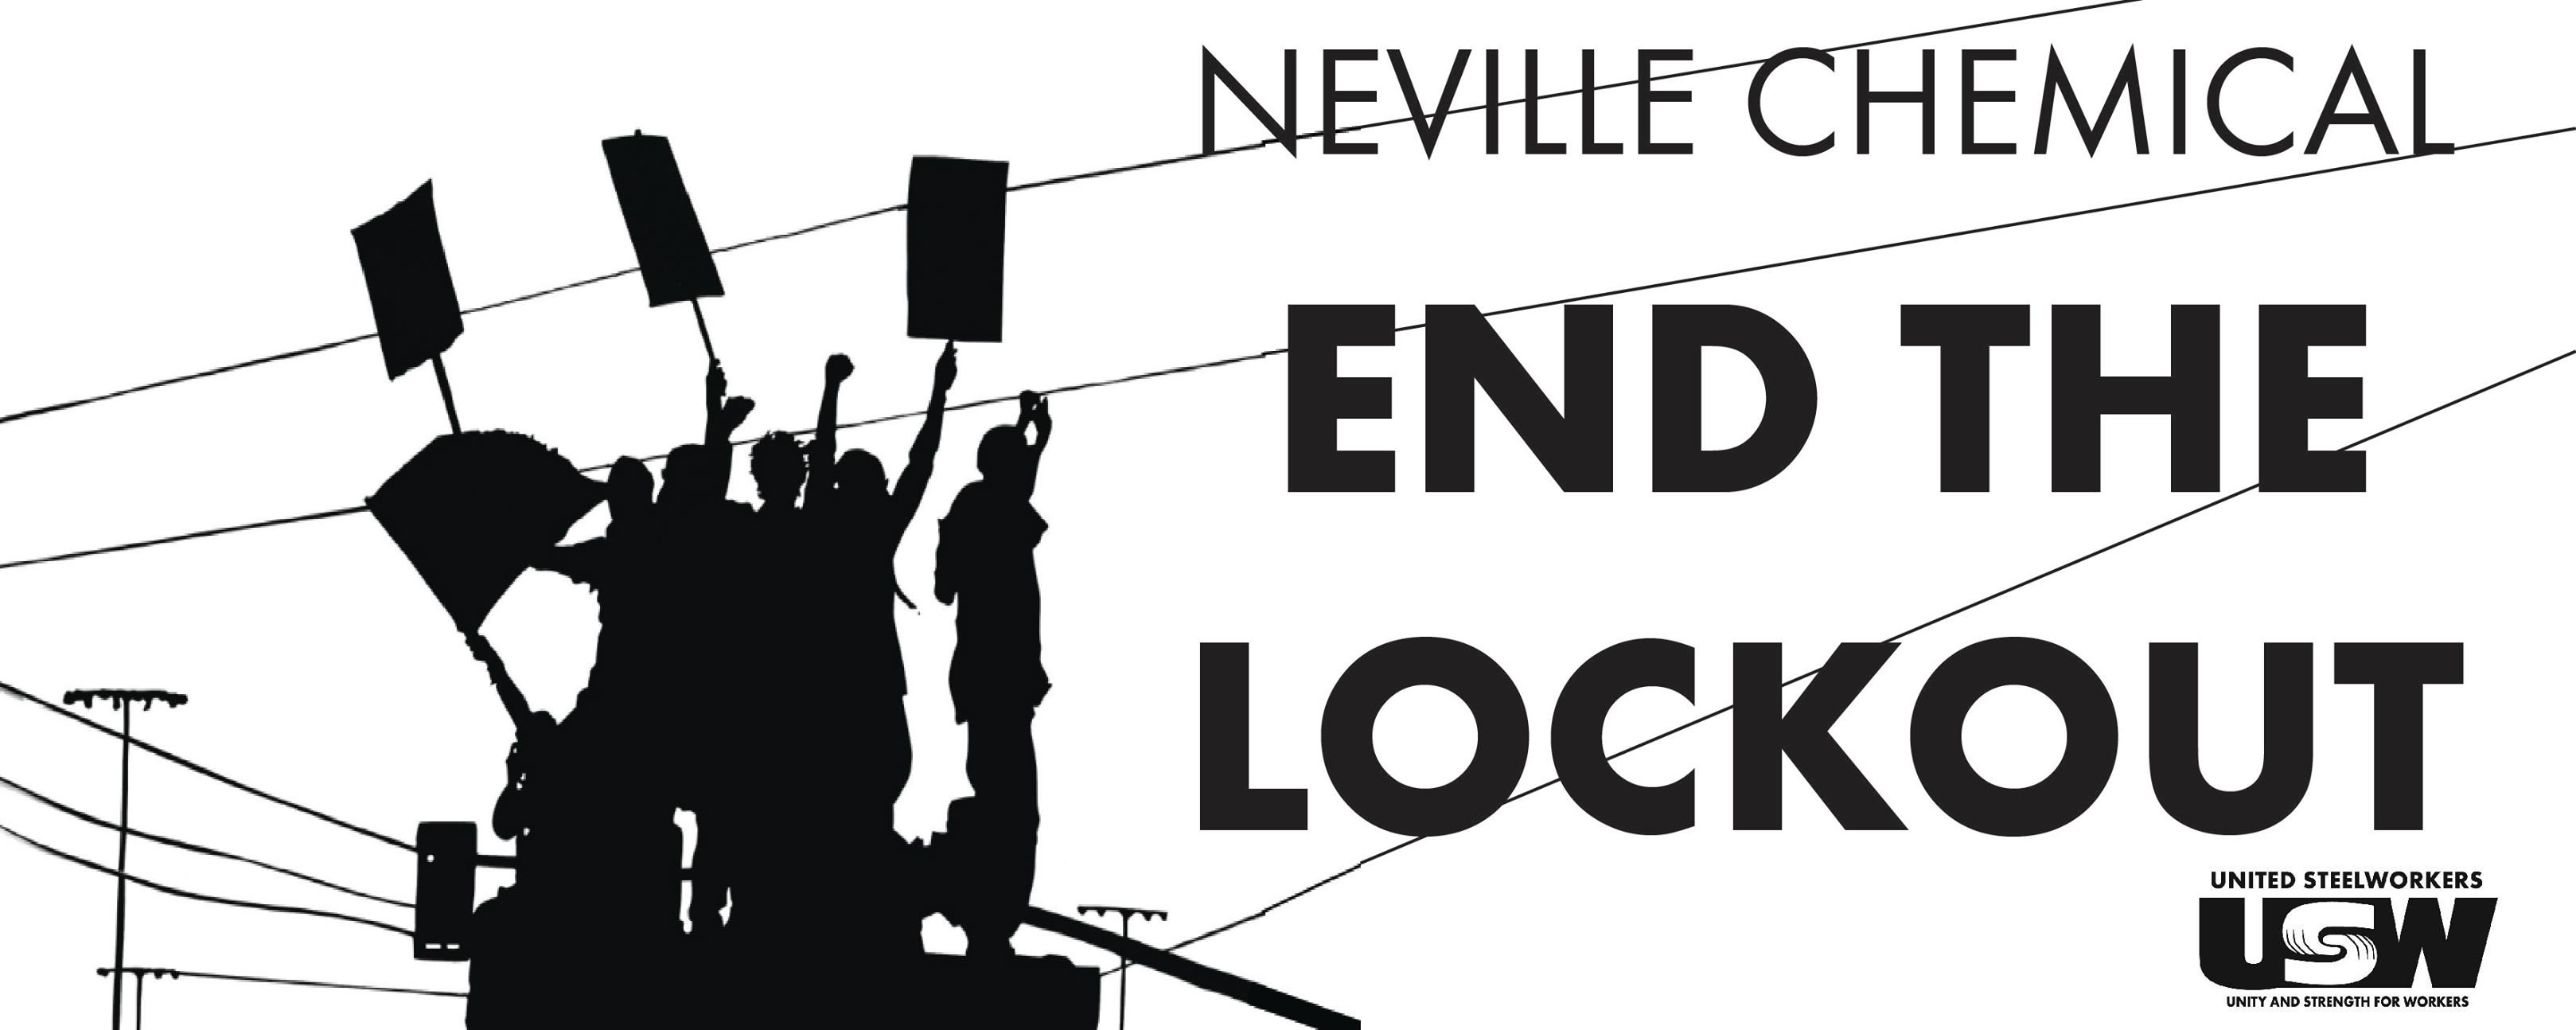 Locked Out United Steelworkers Rally At Neville Chemical